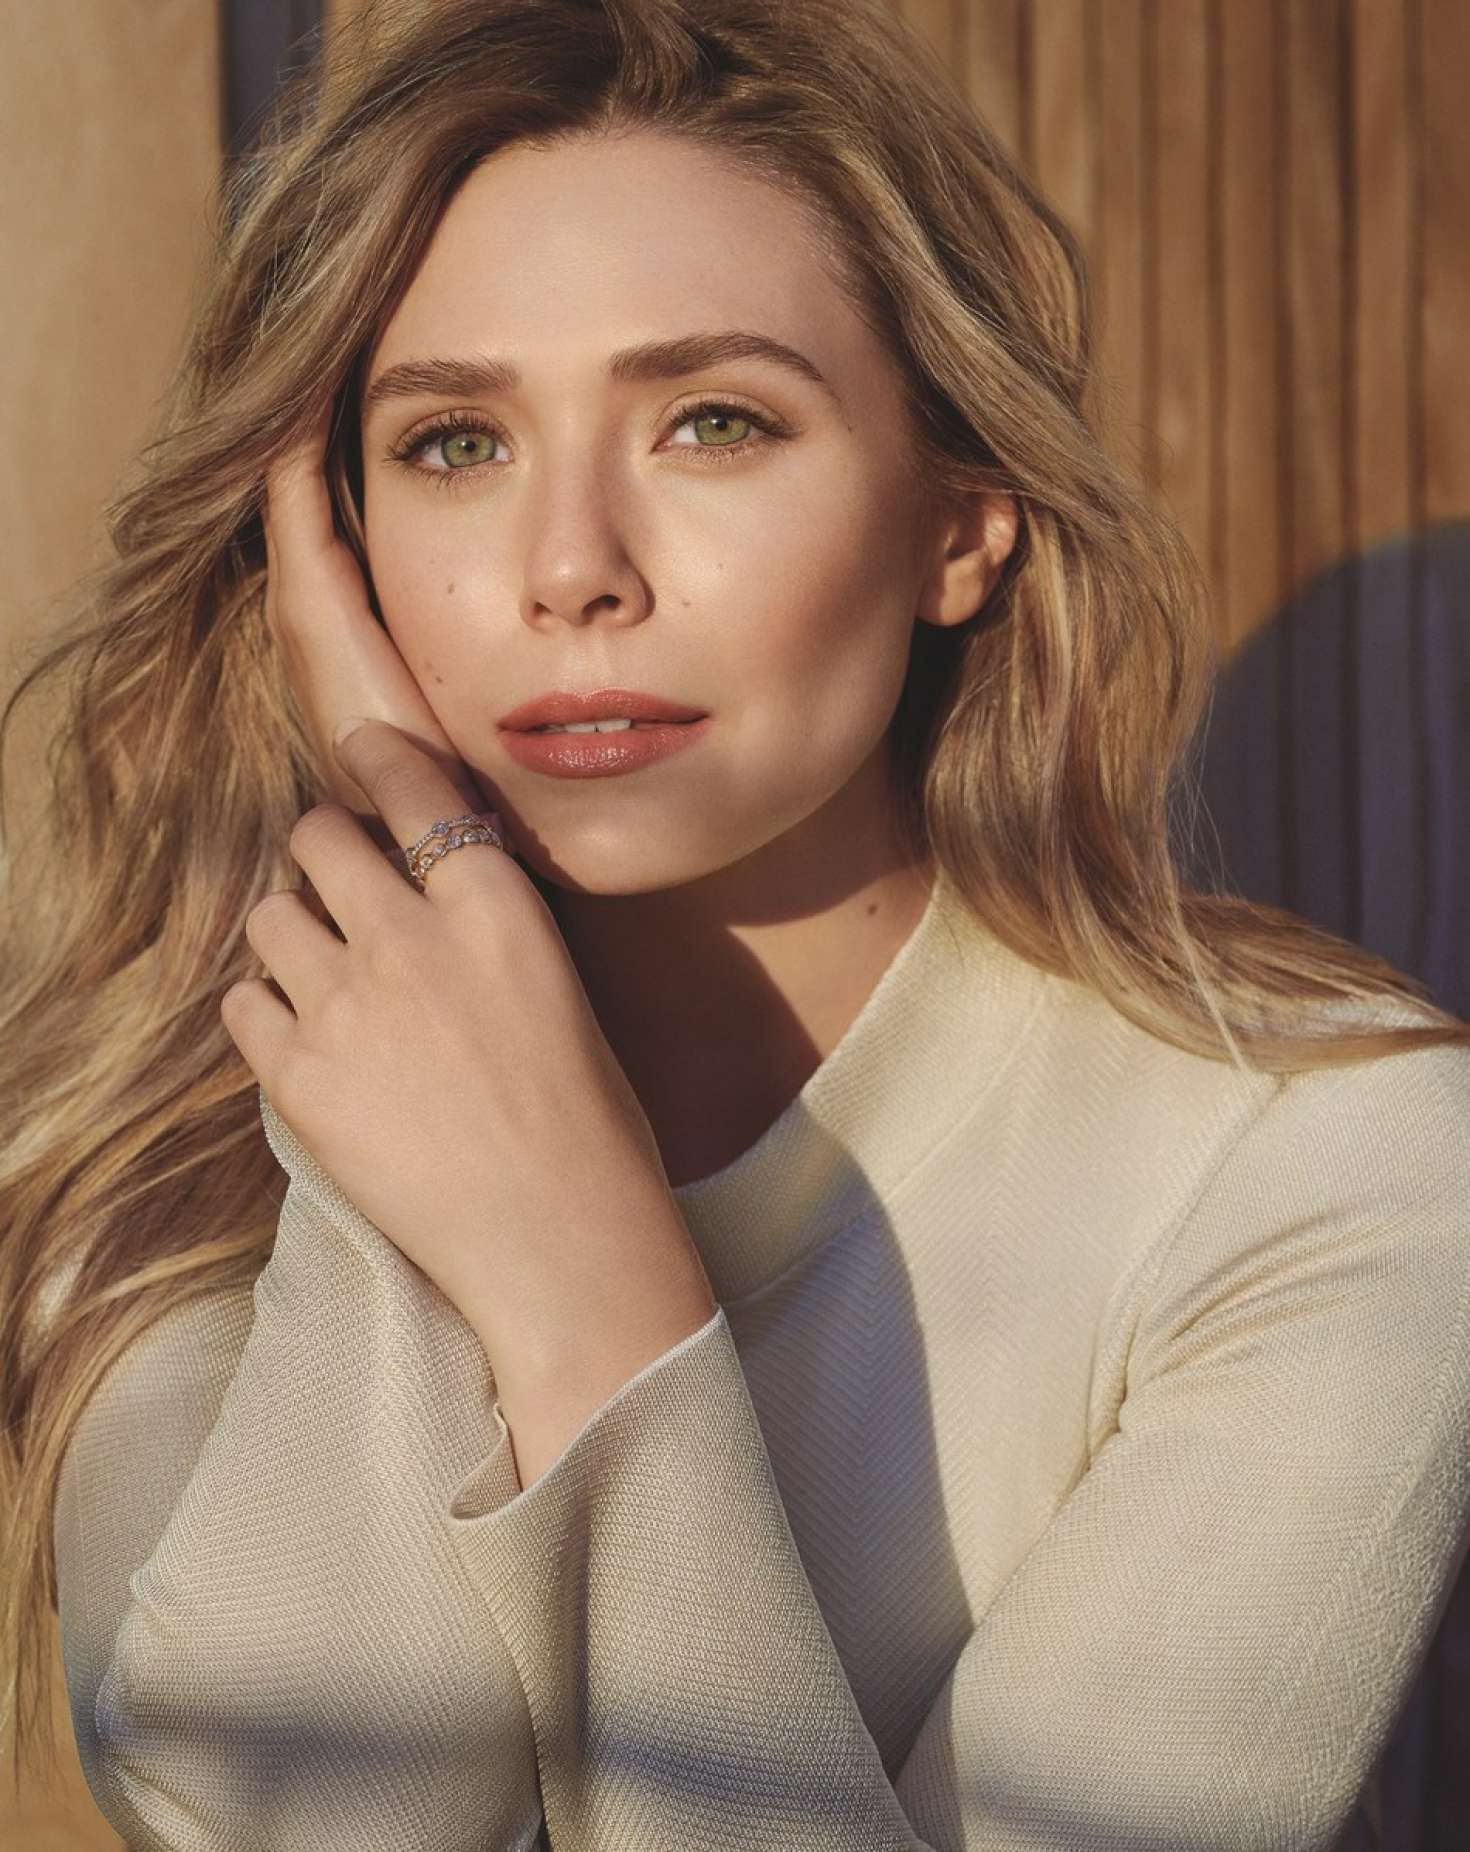 Elizabeth Olsen - Bobbi Brown Cosmetics Campaign (March 2019)